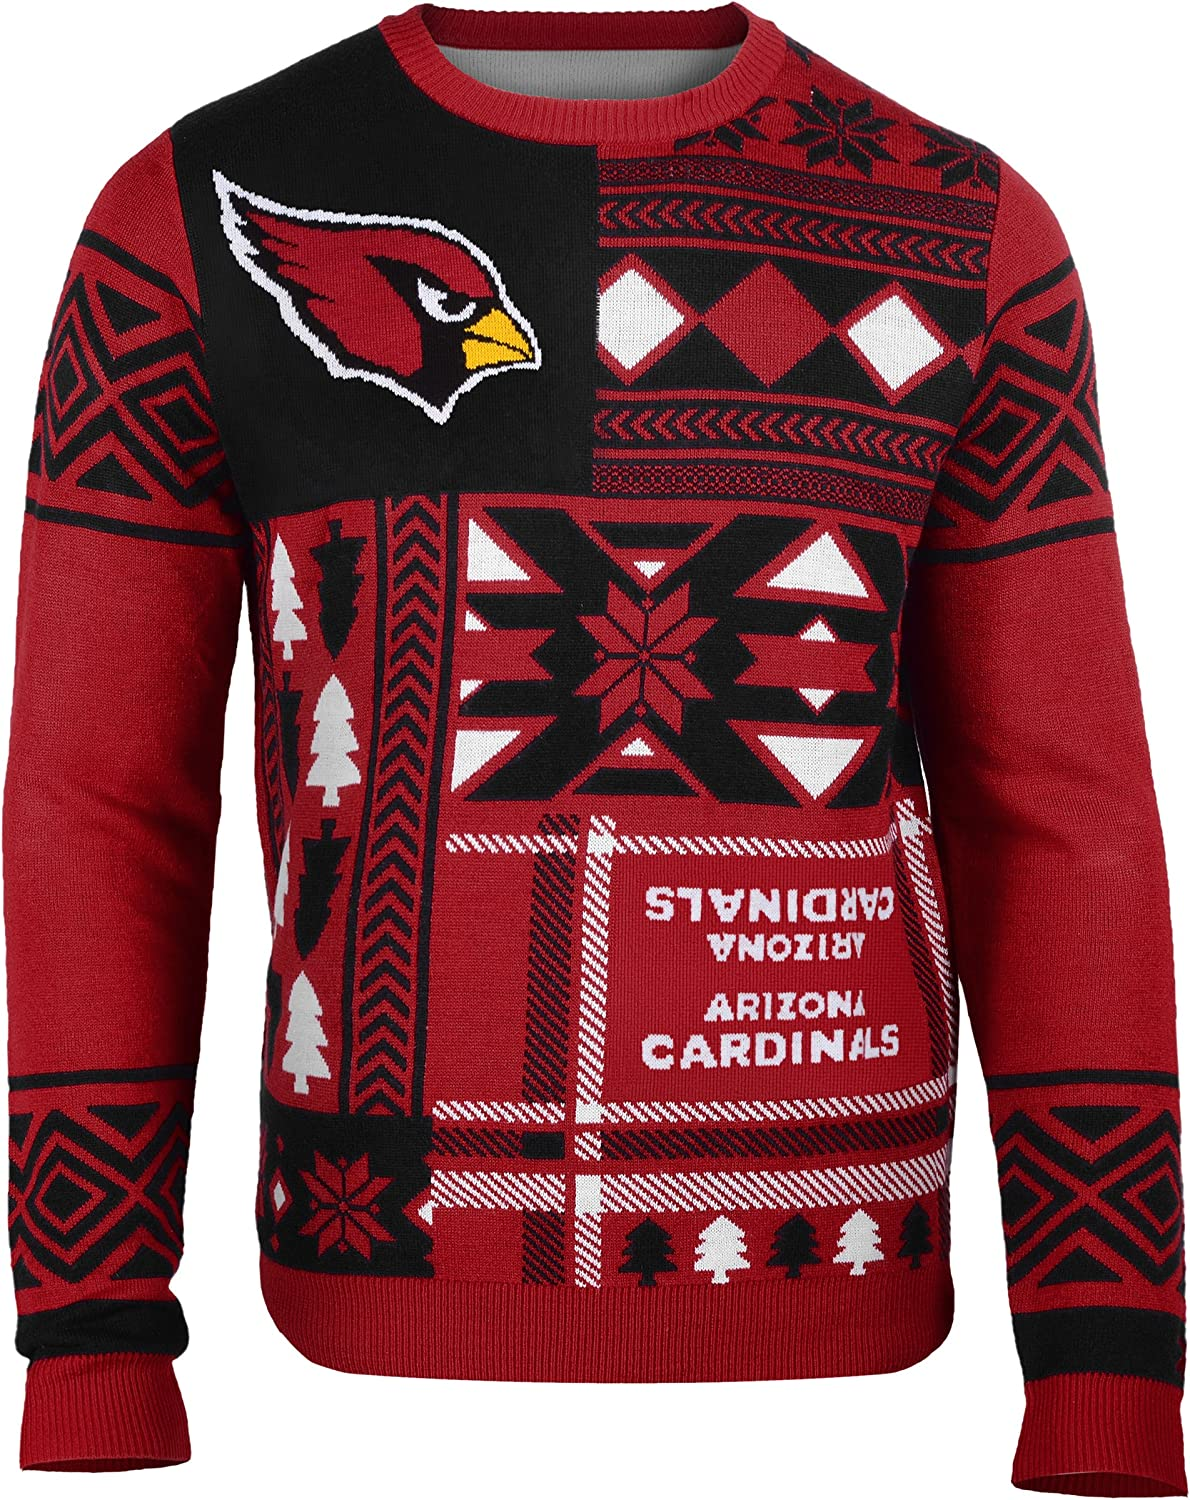 FOCO NFL Unisex-Adult 3D Ugly Sweater